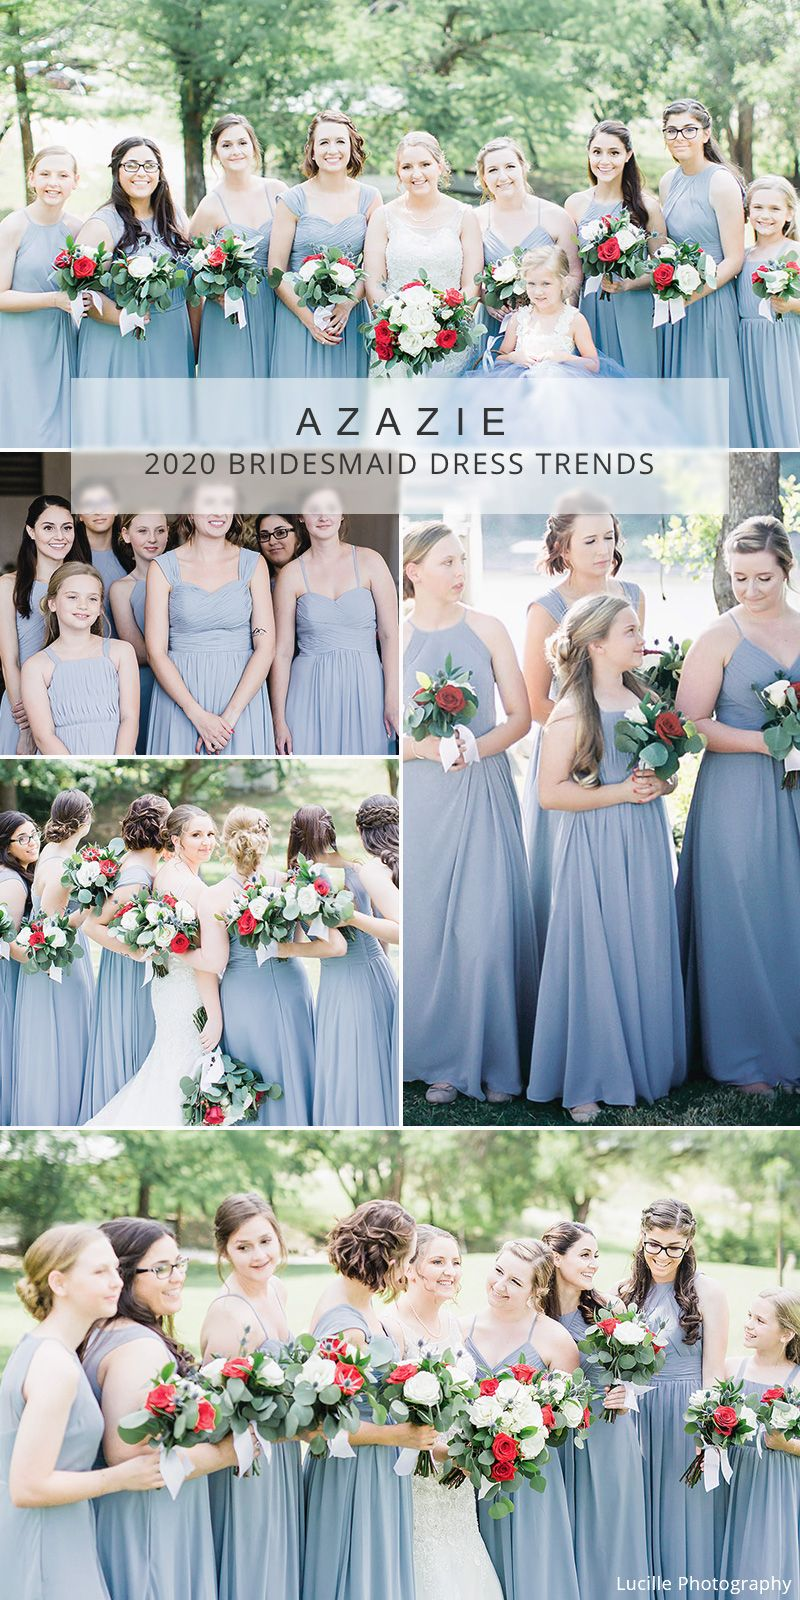 Dusty Blue Bridesmaid Dresses For Spring And Summer Wedding Bridesmaid Dresses Dusty Blue Bridesmaid Dresses Blue Bridesmaid Dresses